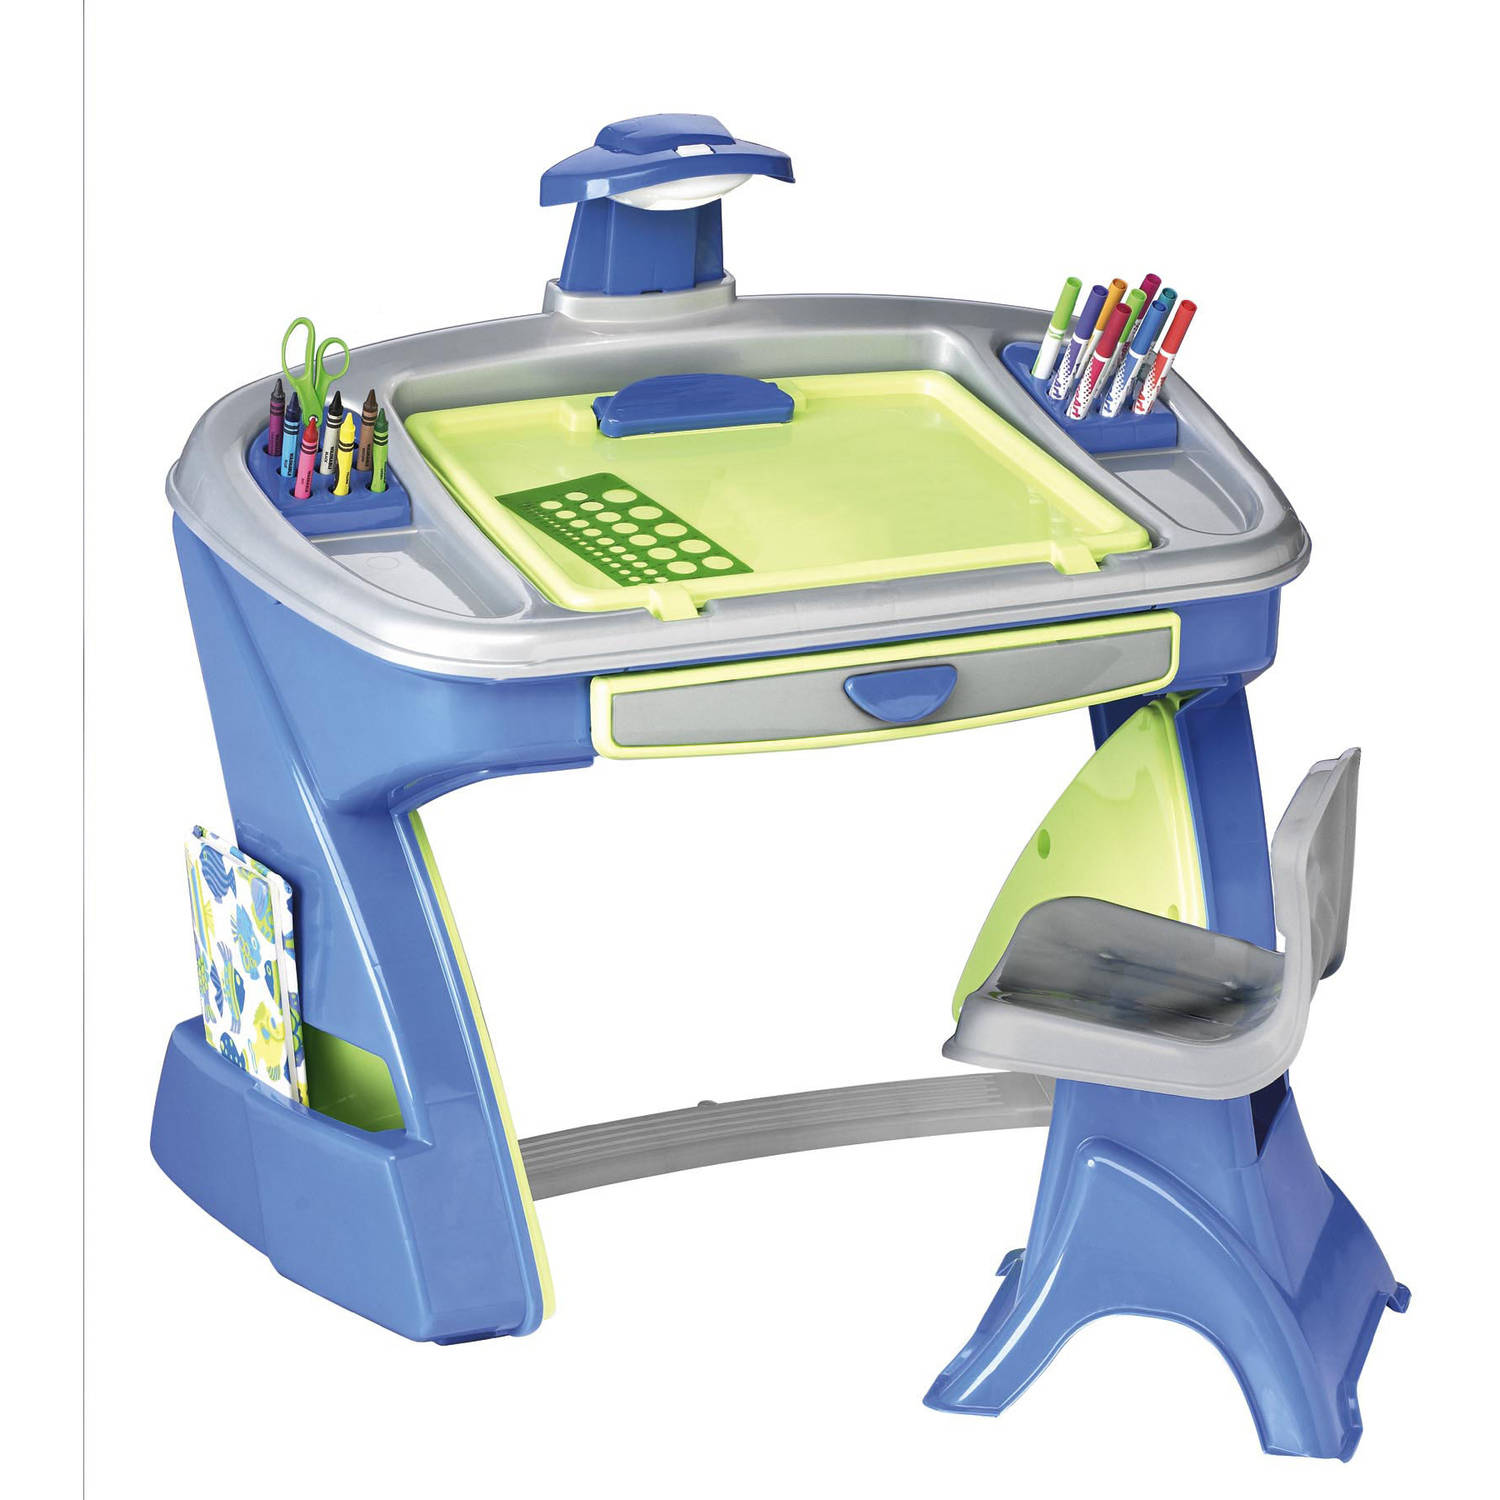 American Plastic Toys Creativity Desk and Easel Walmart